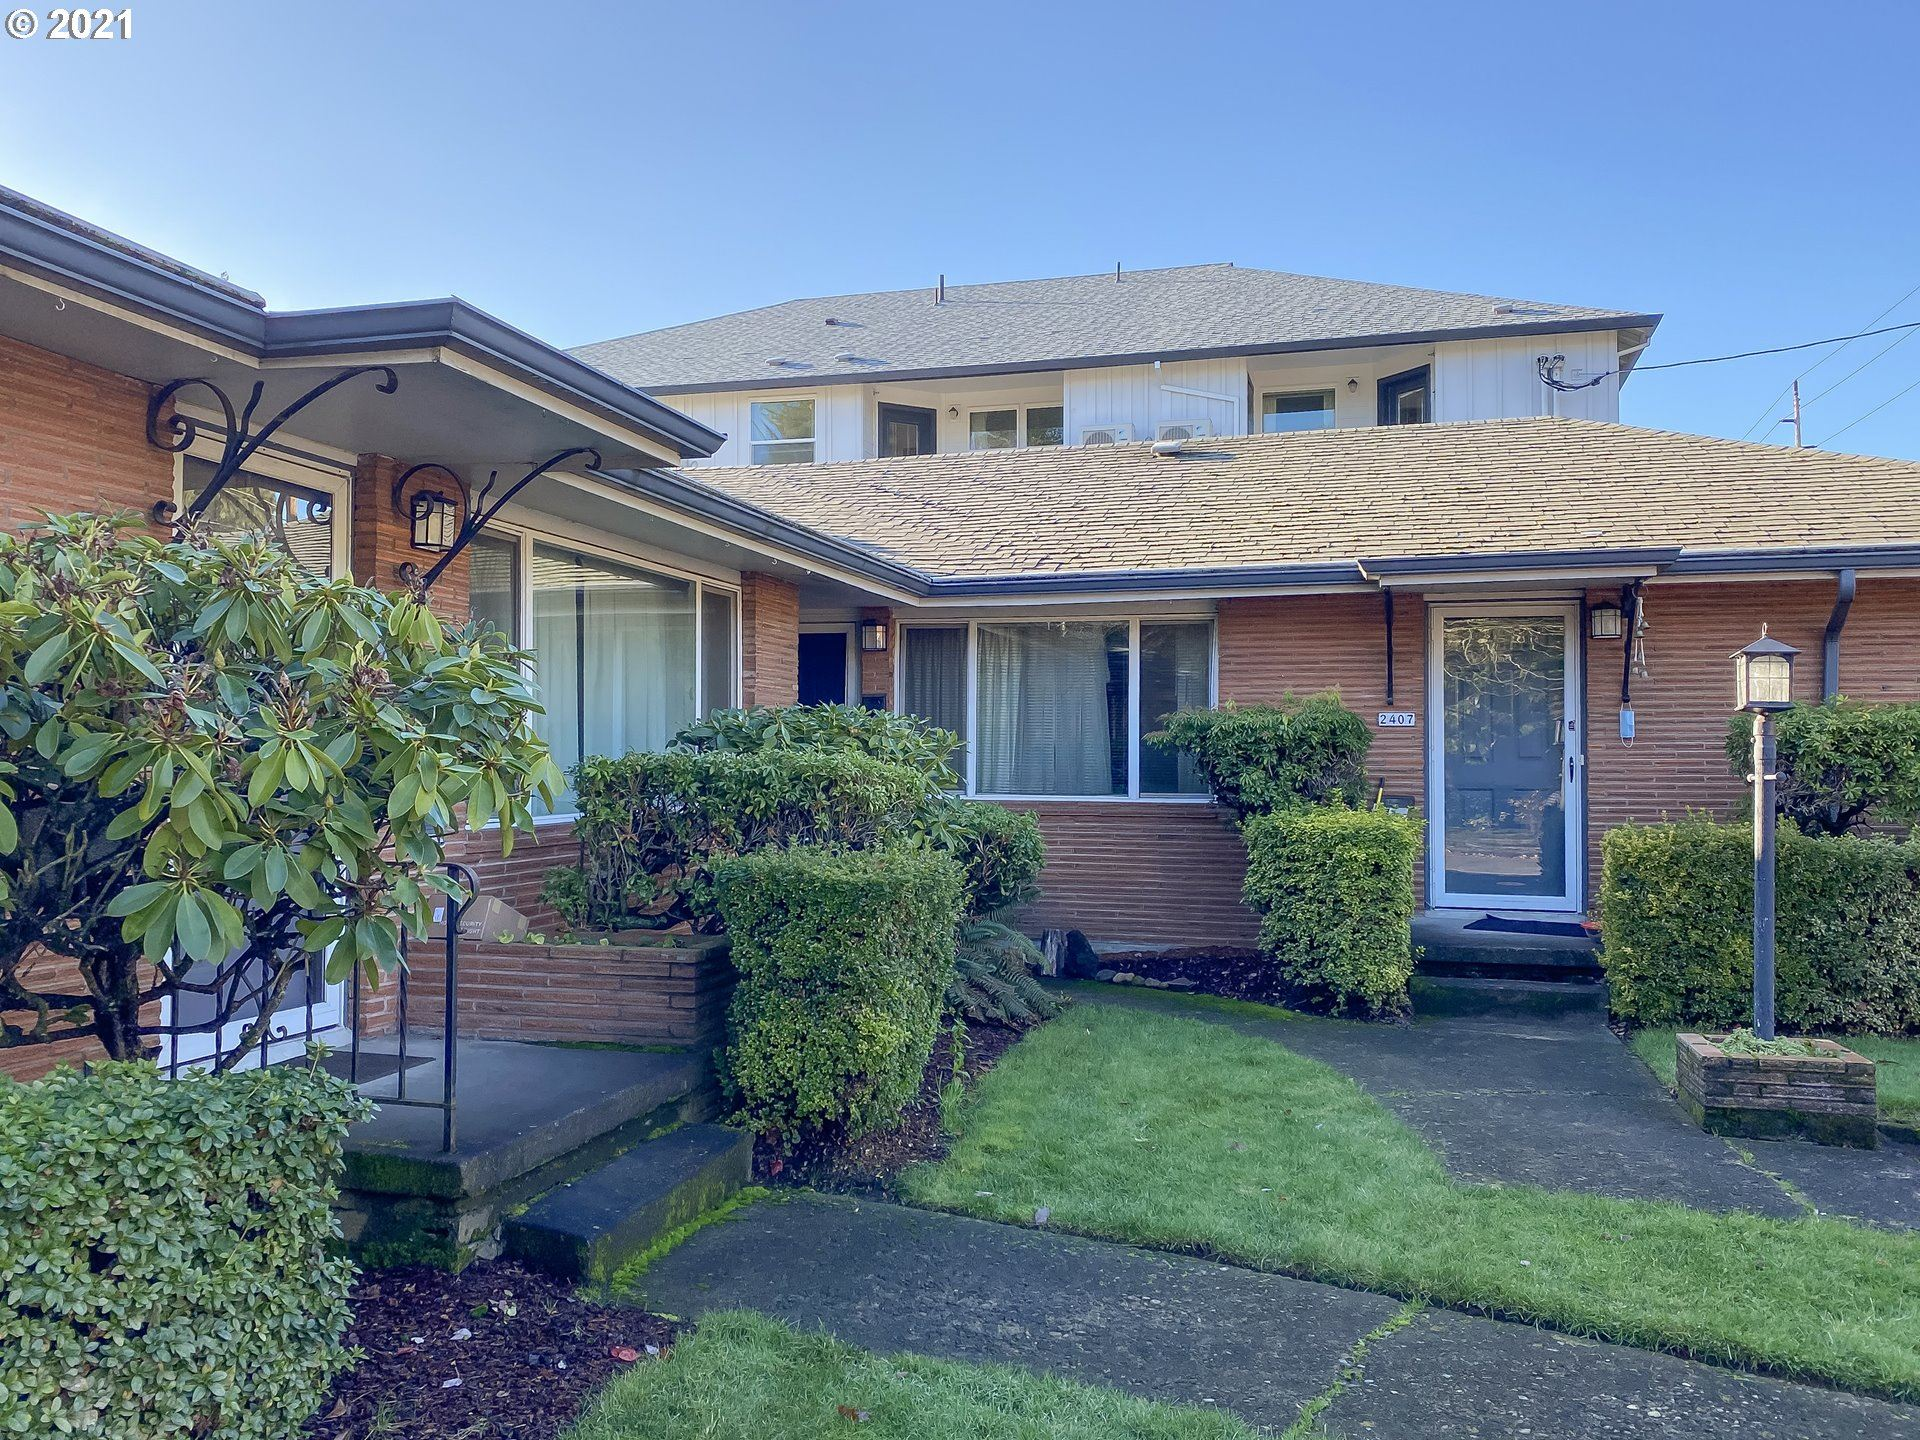 2407 SE 66TH AVE, Portland, OR 97206 - MLS#: 21333626